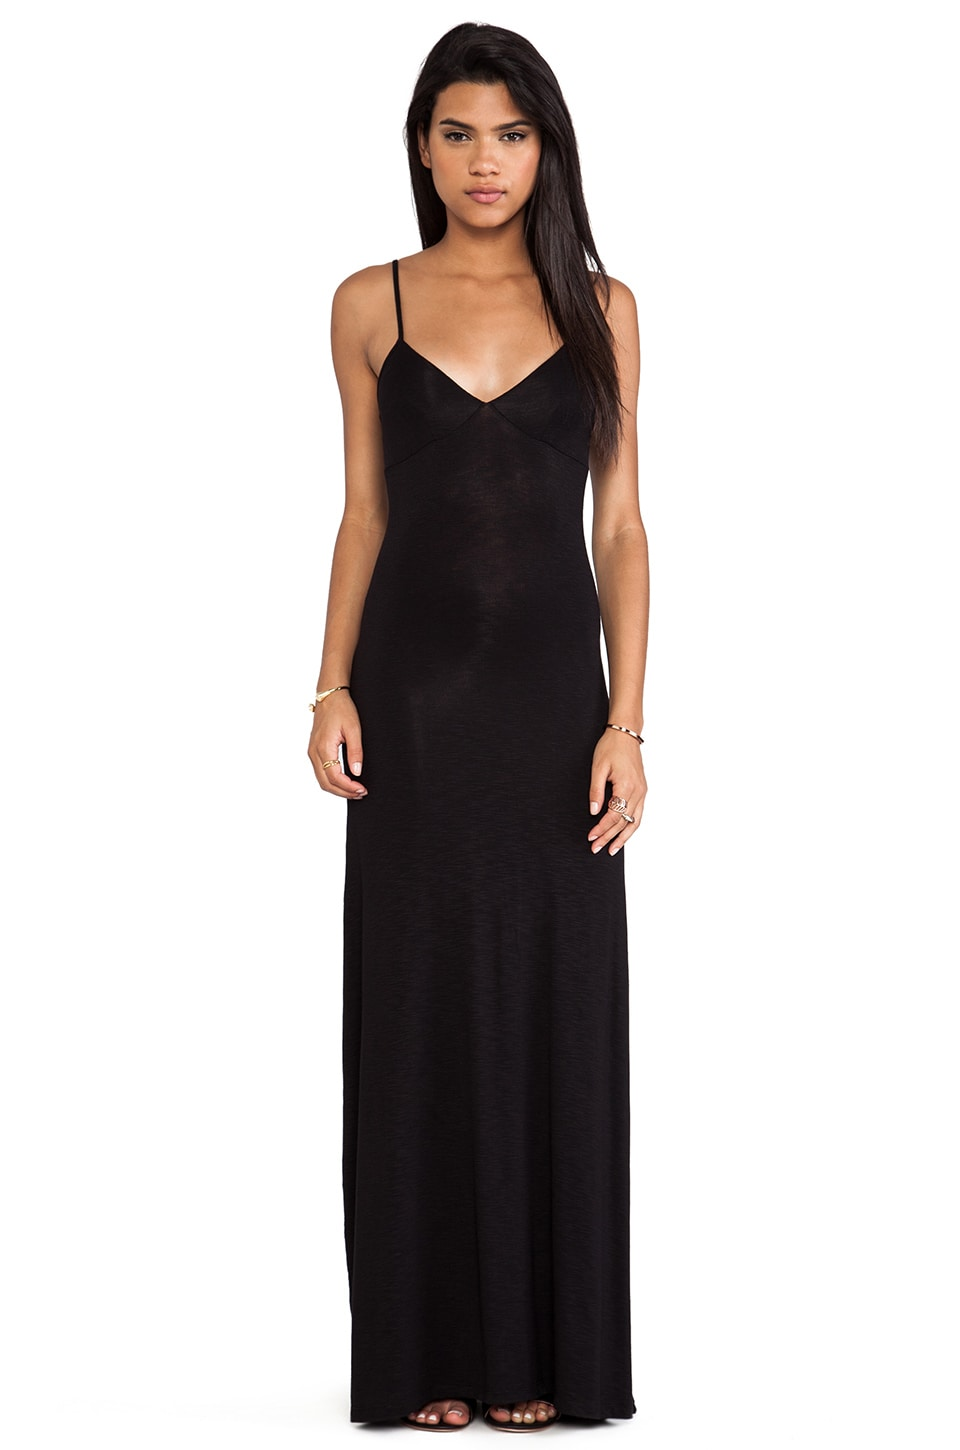 dolan Slip Maxi Dress in Black